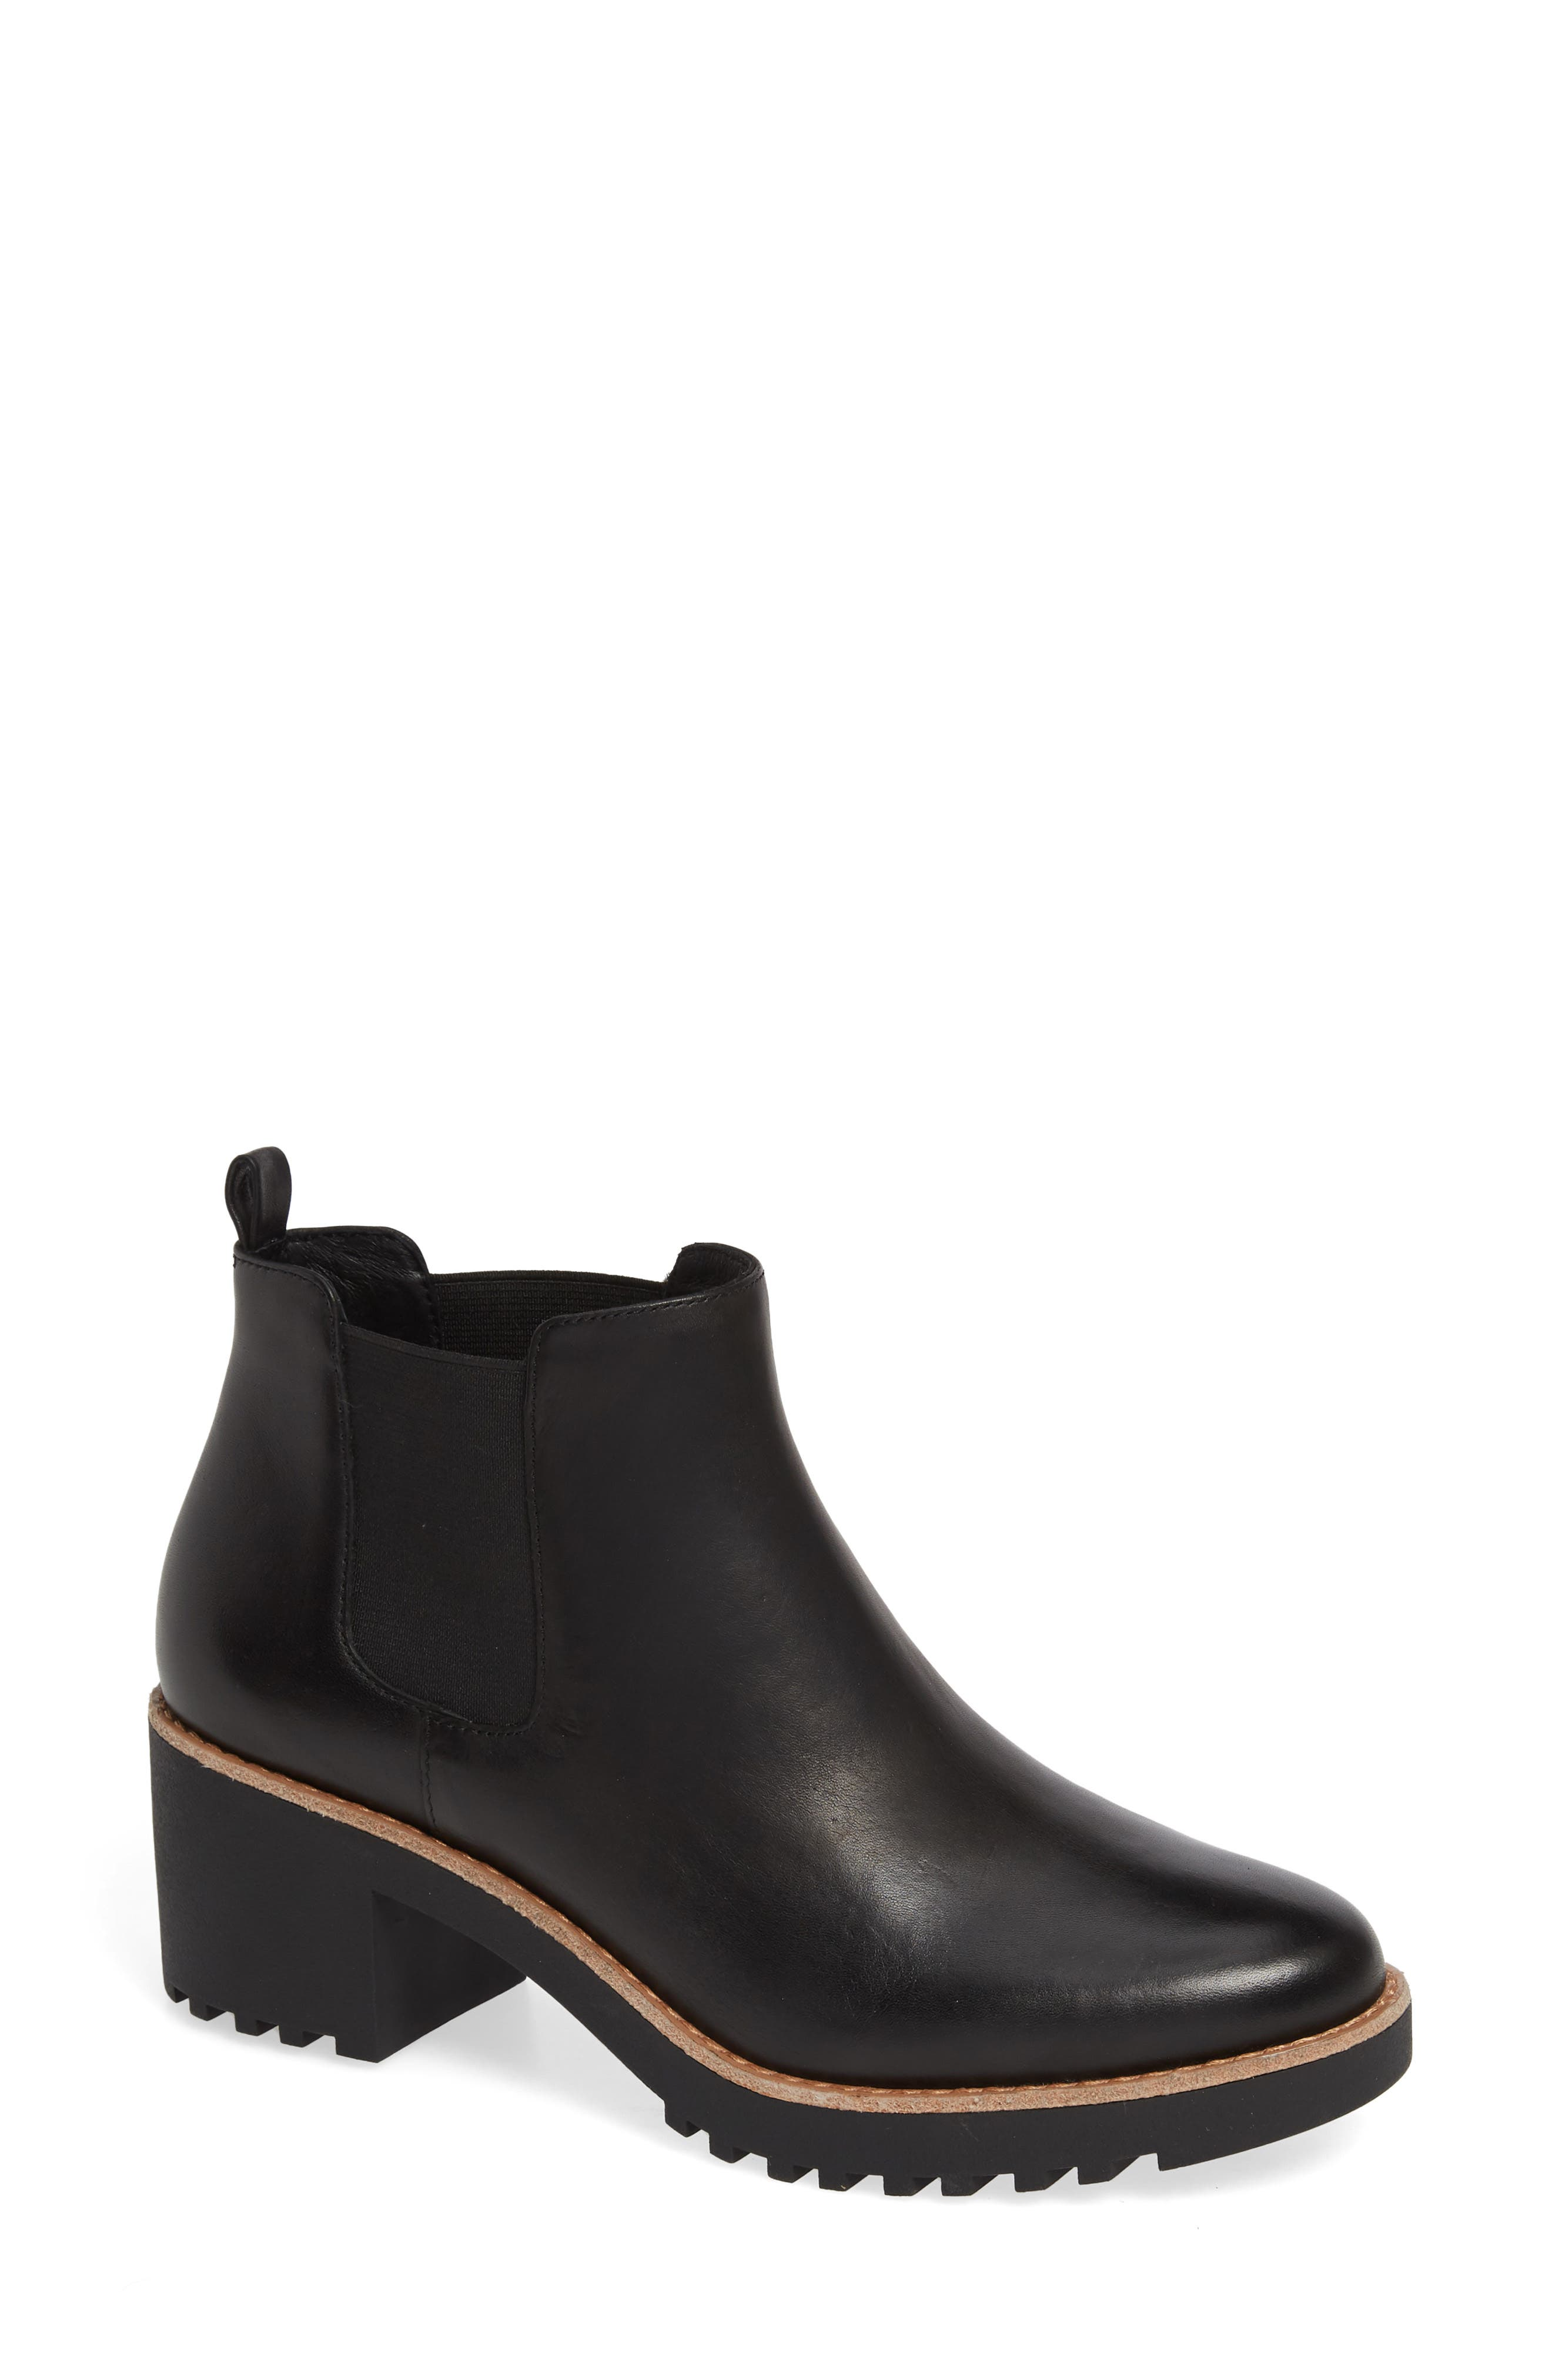 Joshua Water Resistant Bootie,                             Main thumbnail 1, color,                             BLACK LEATHER